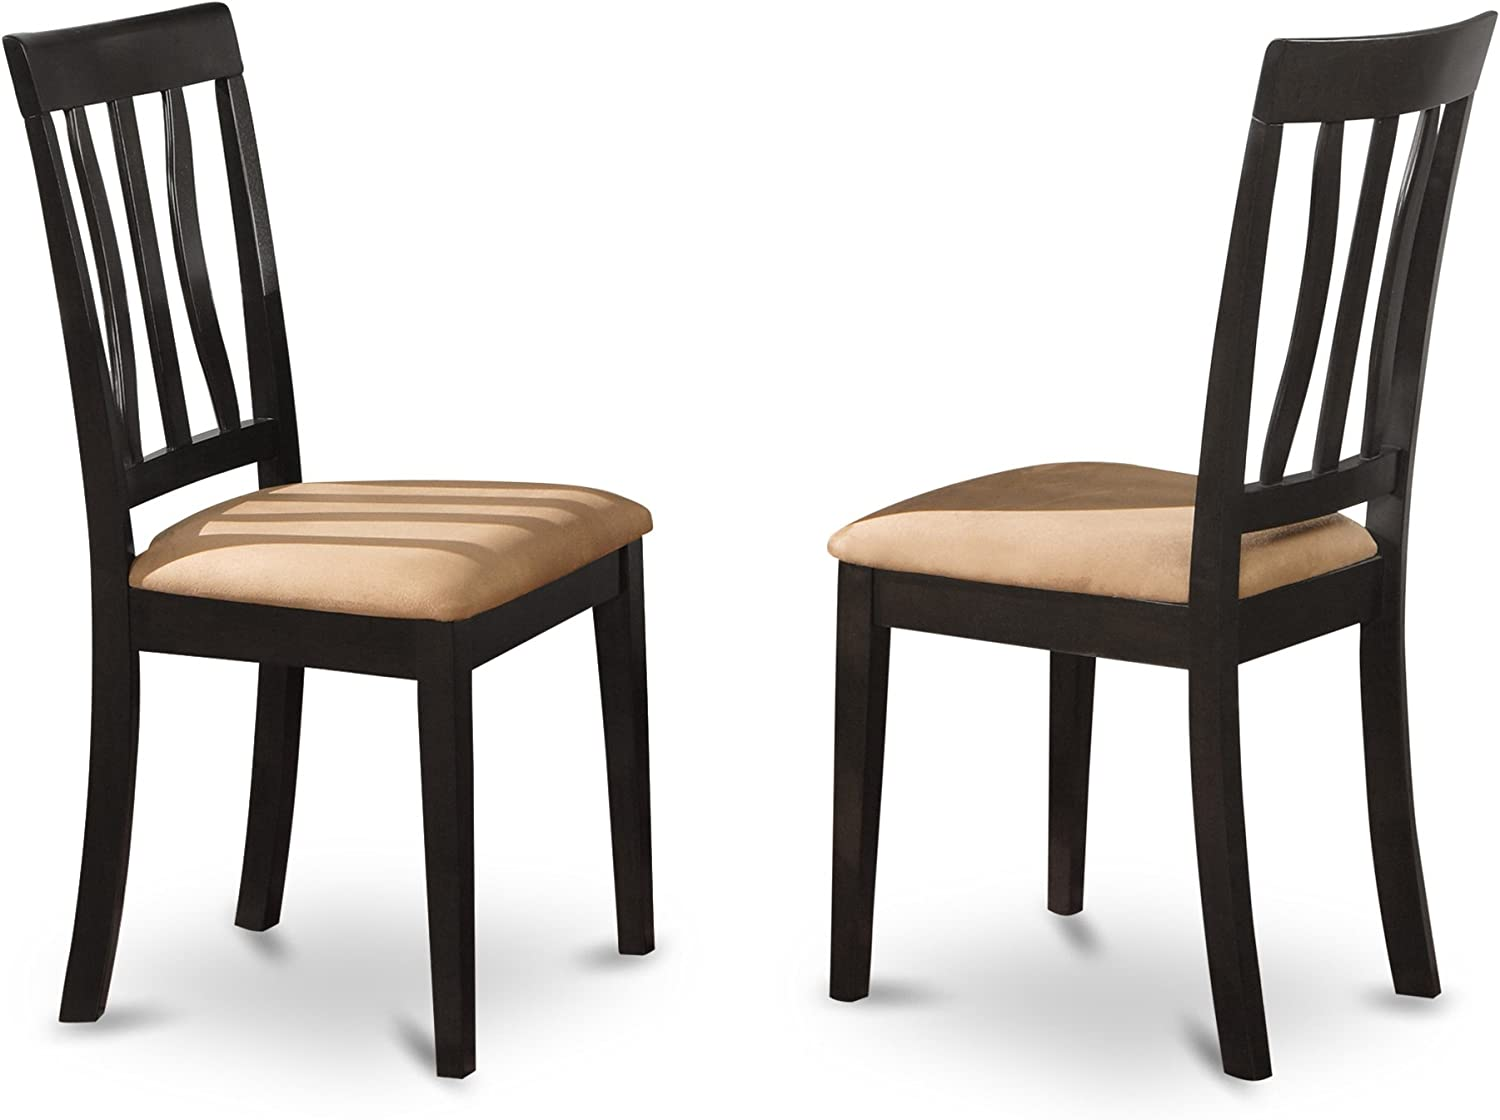 Set Of 2 Antique Dining Room Microfiber Upholstered Chairs In Black Finishes